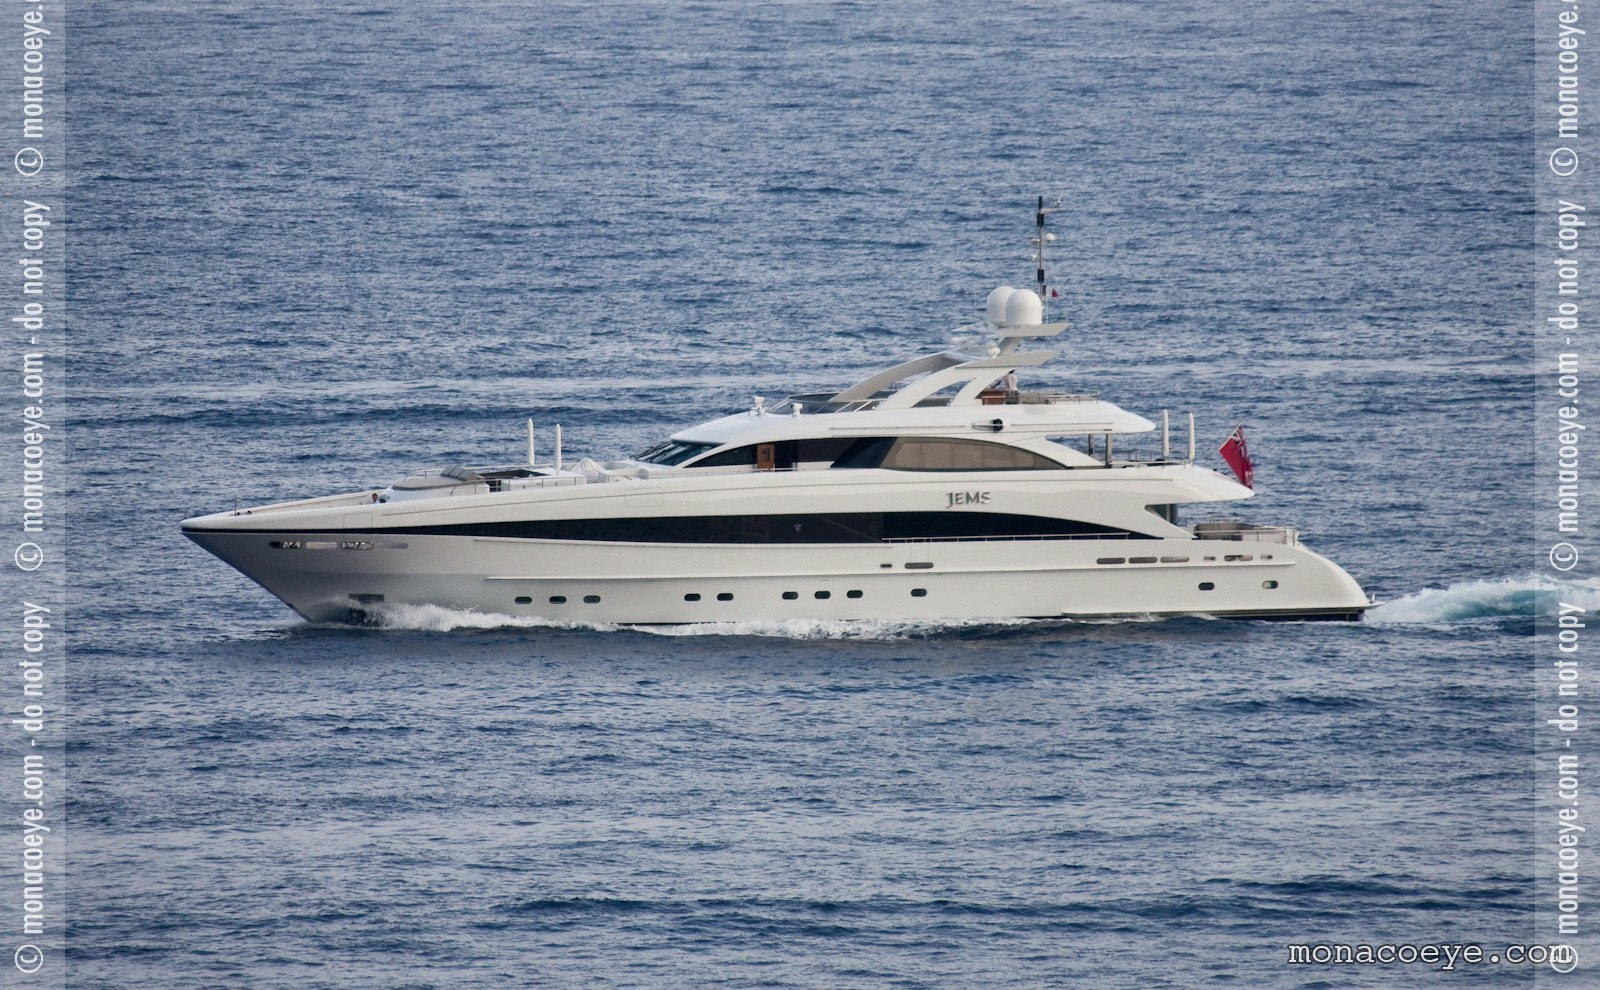 Jems, yacht from Heesen. Build number 14444, 2009, 44 metres